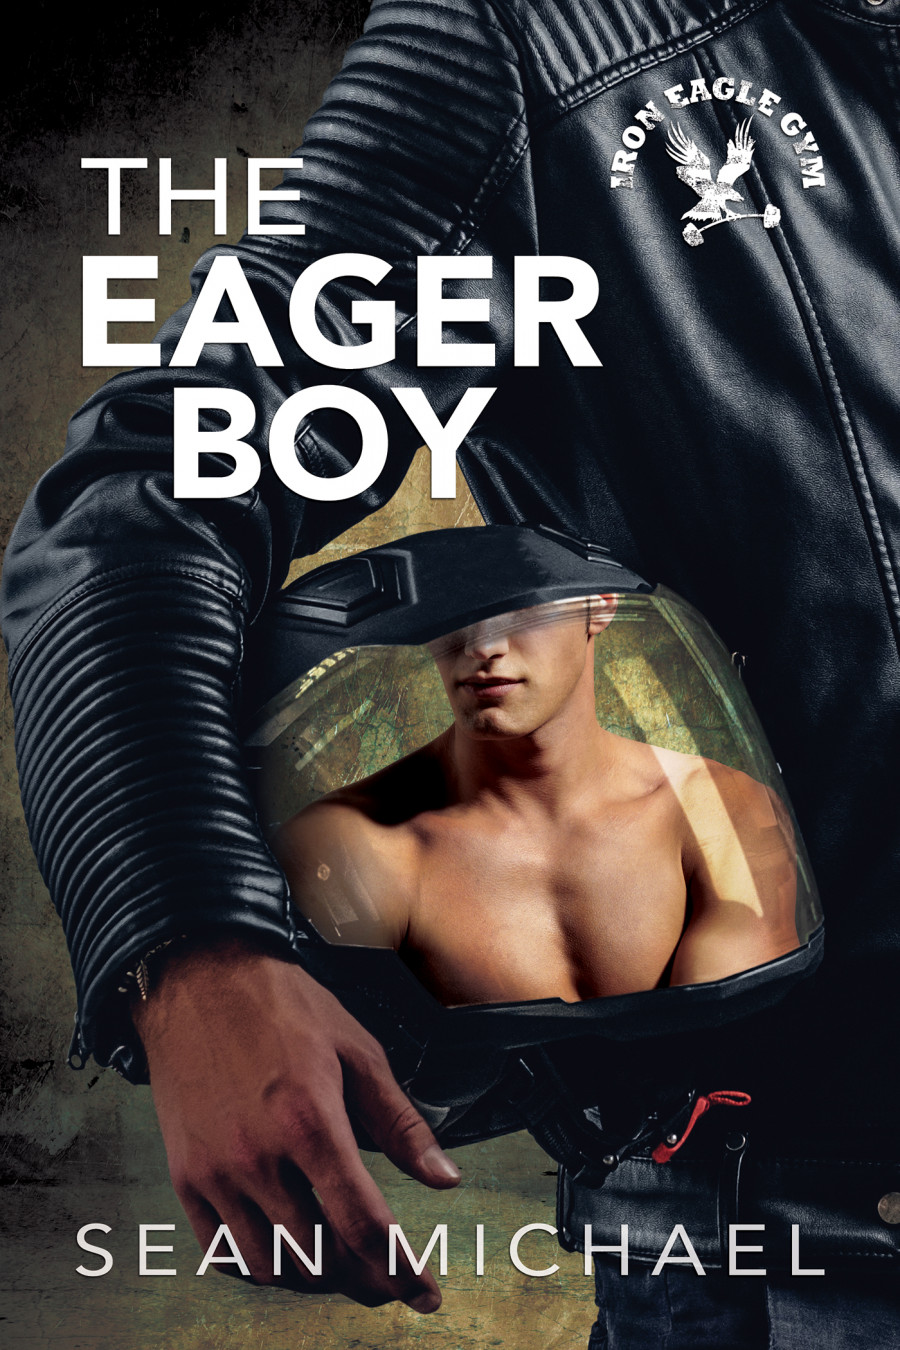 The Eager Boy